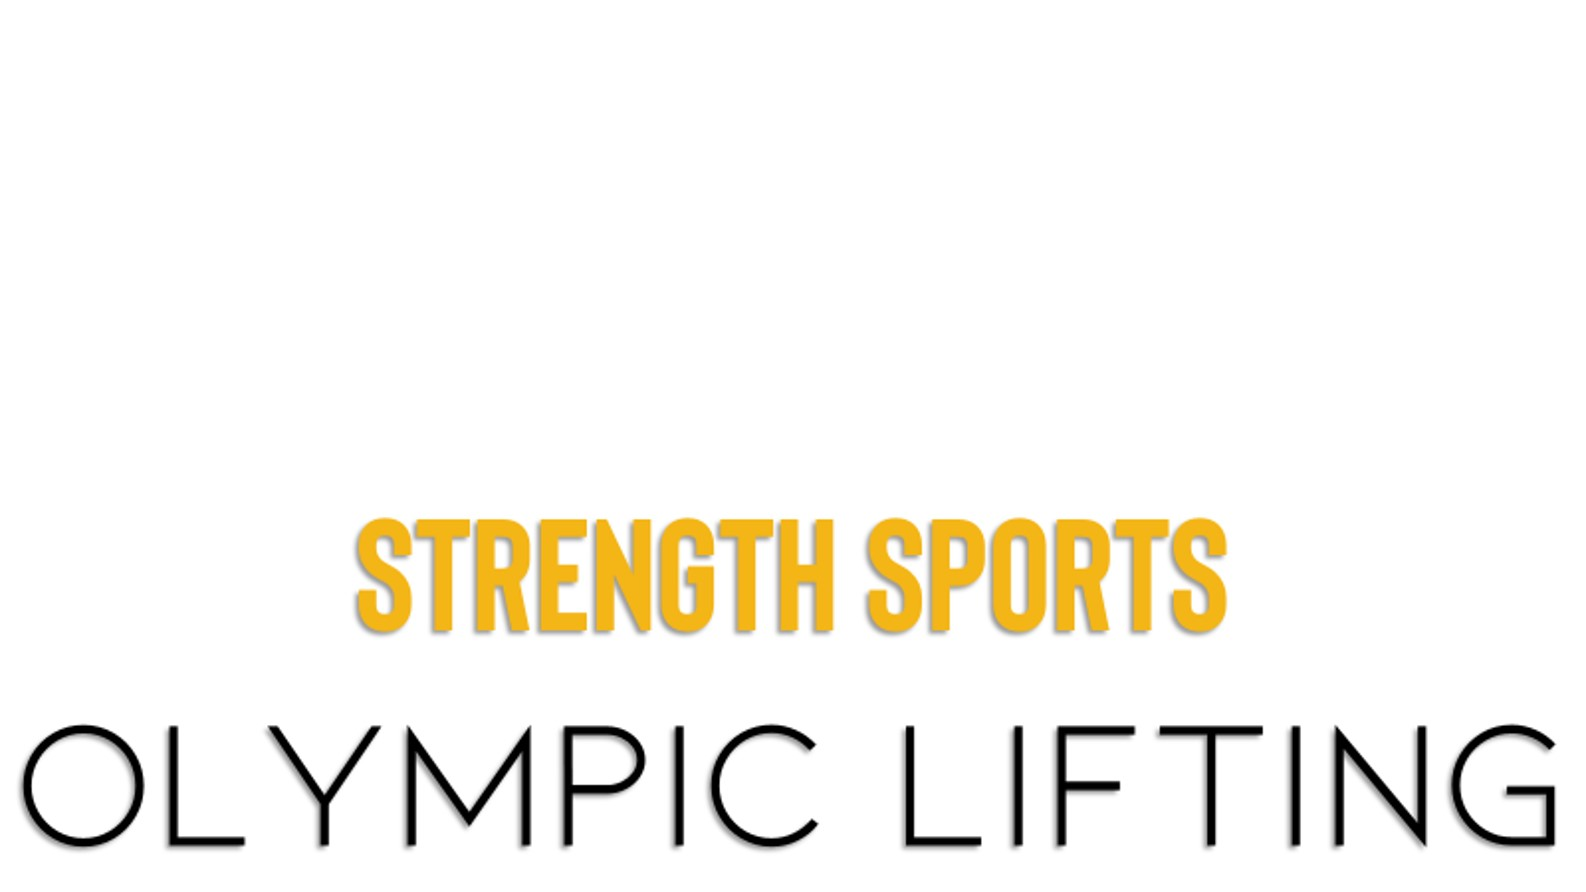 Strength sports olympic lifting